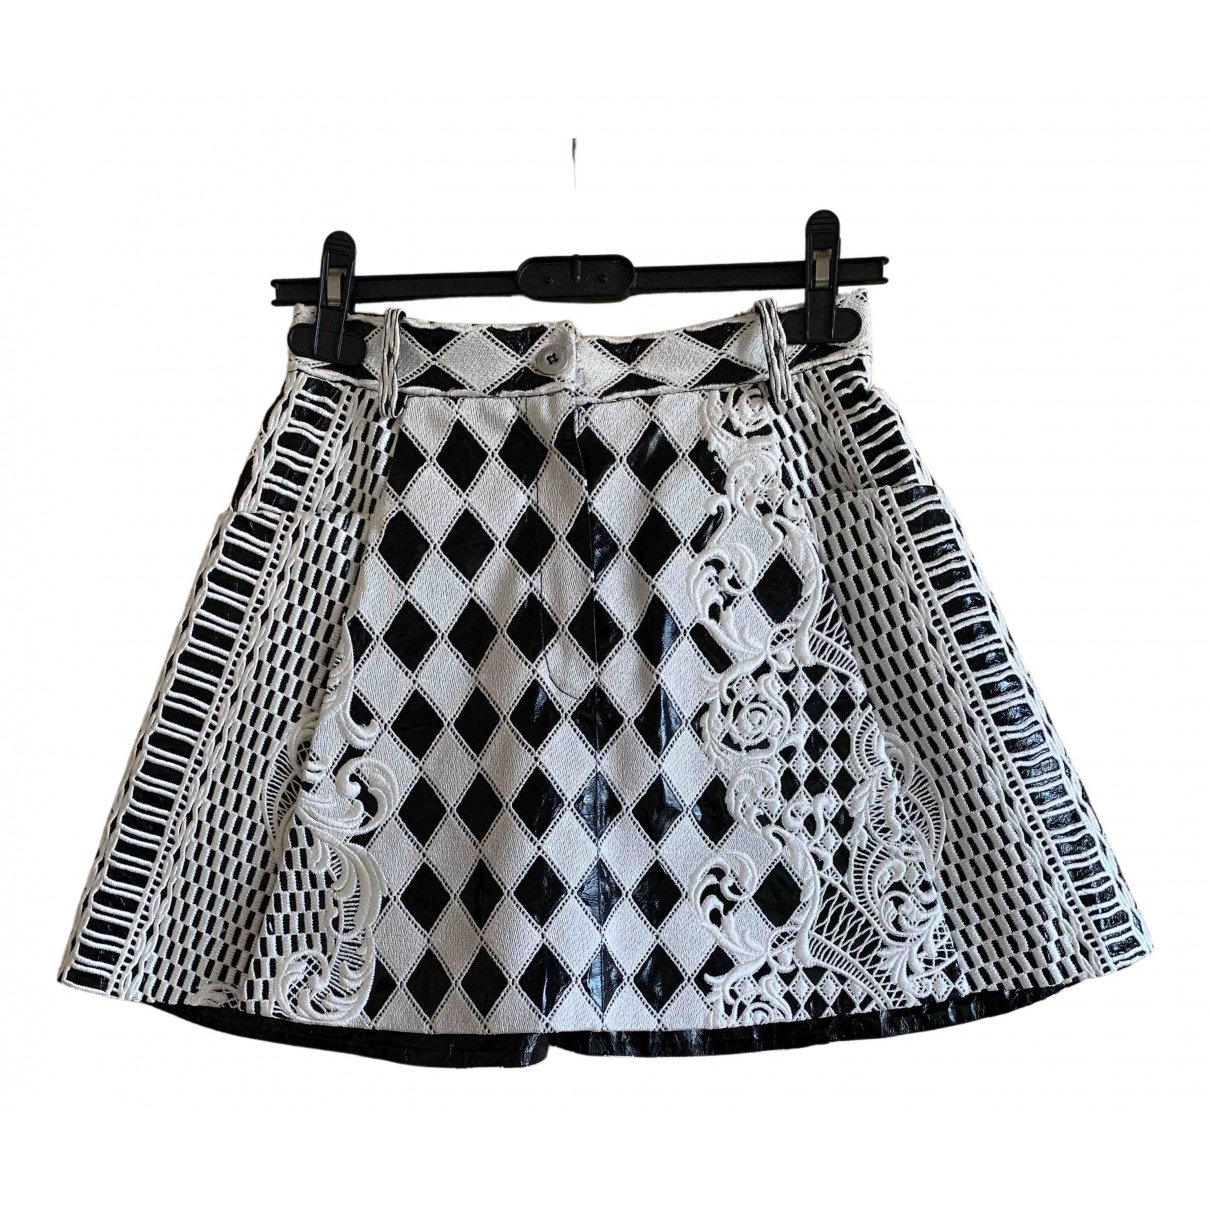 Balmain N Black Leather Skirt for Women